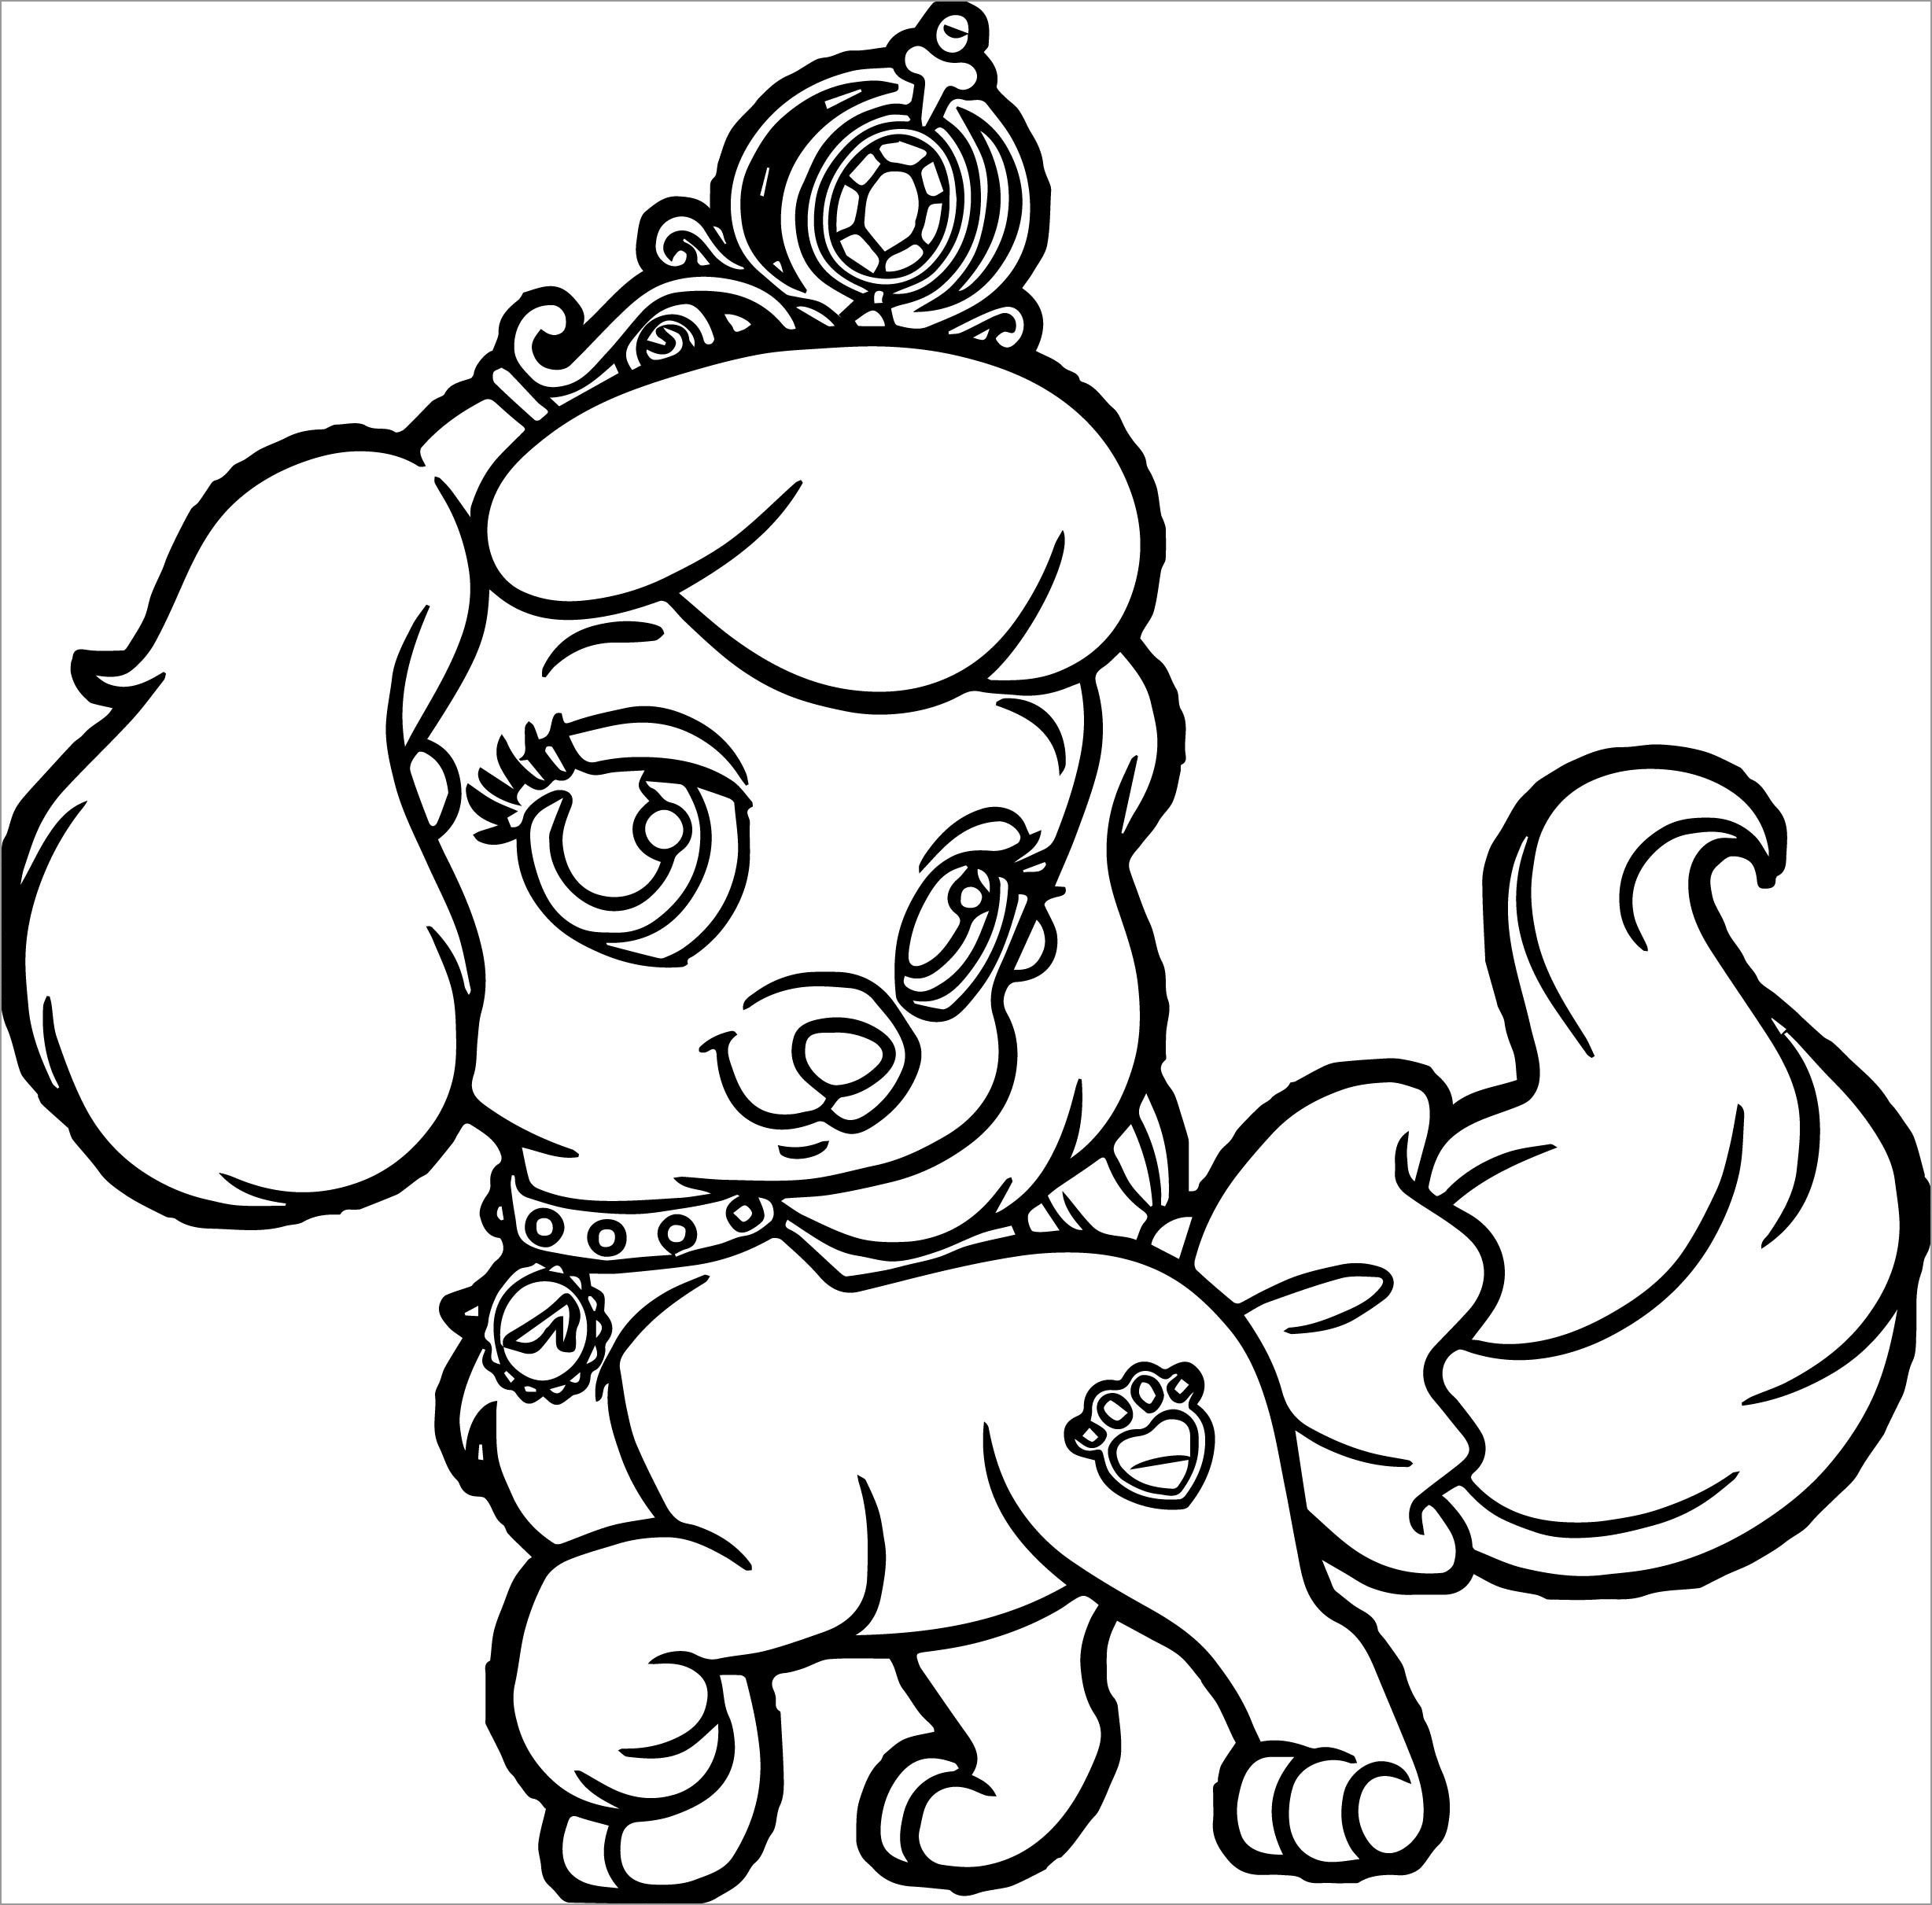 puppy princes coloring for girls coloringbay crayola phone number crossword dry erase coloring pages Puppy Coloring Page